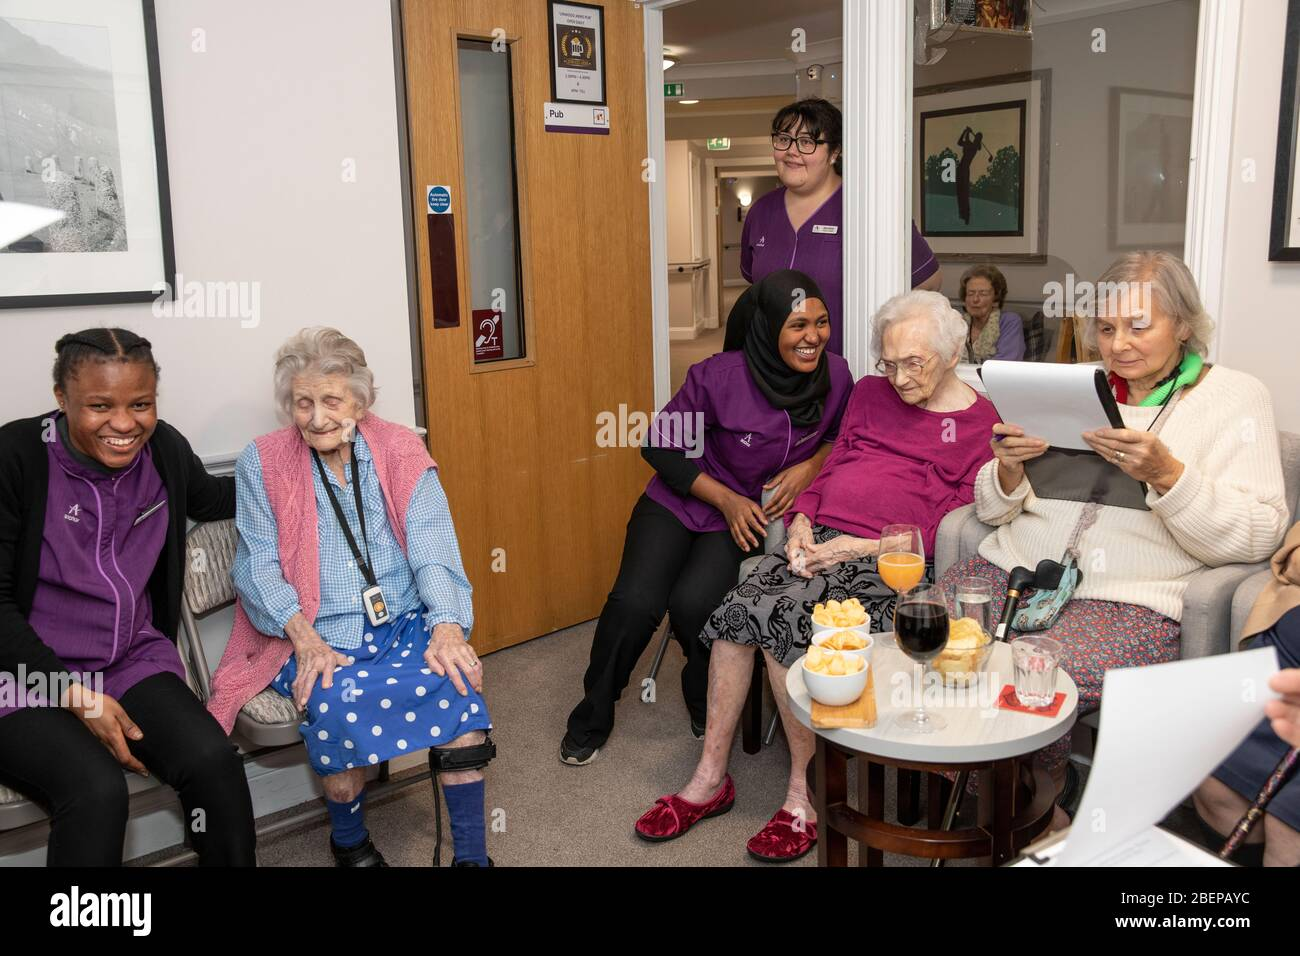 care-home-which-has-opened-a-pub-for-residents-one-of-several-care-homes-who-now-provide-a-bar-area-for-the-elderly-residents-england-uk-2BEPAYC.jpg?profile=RESIZE_400x